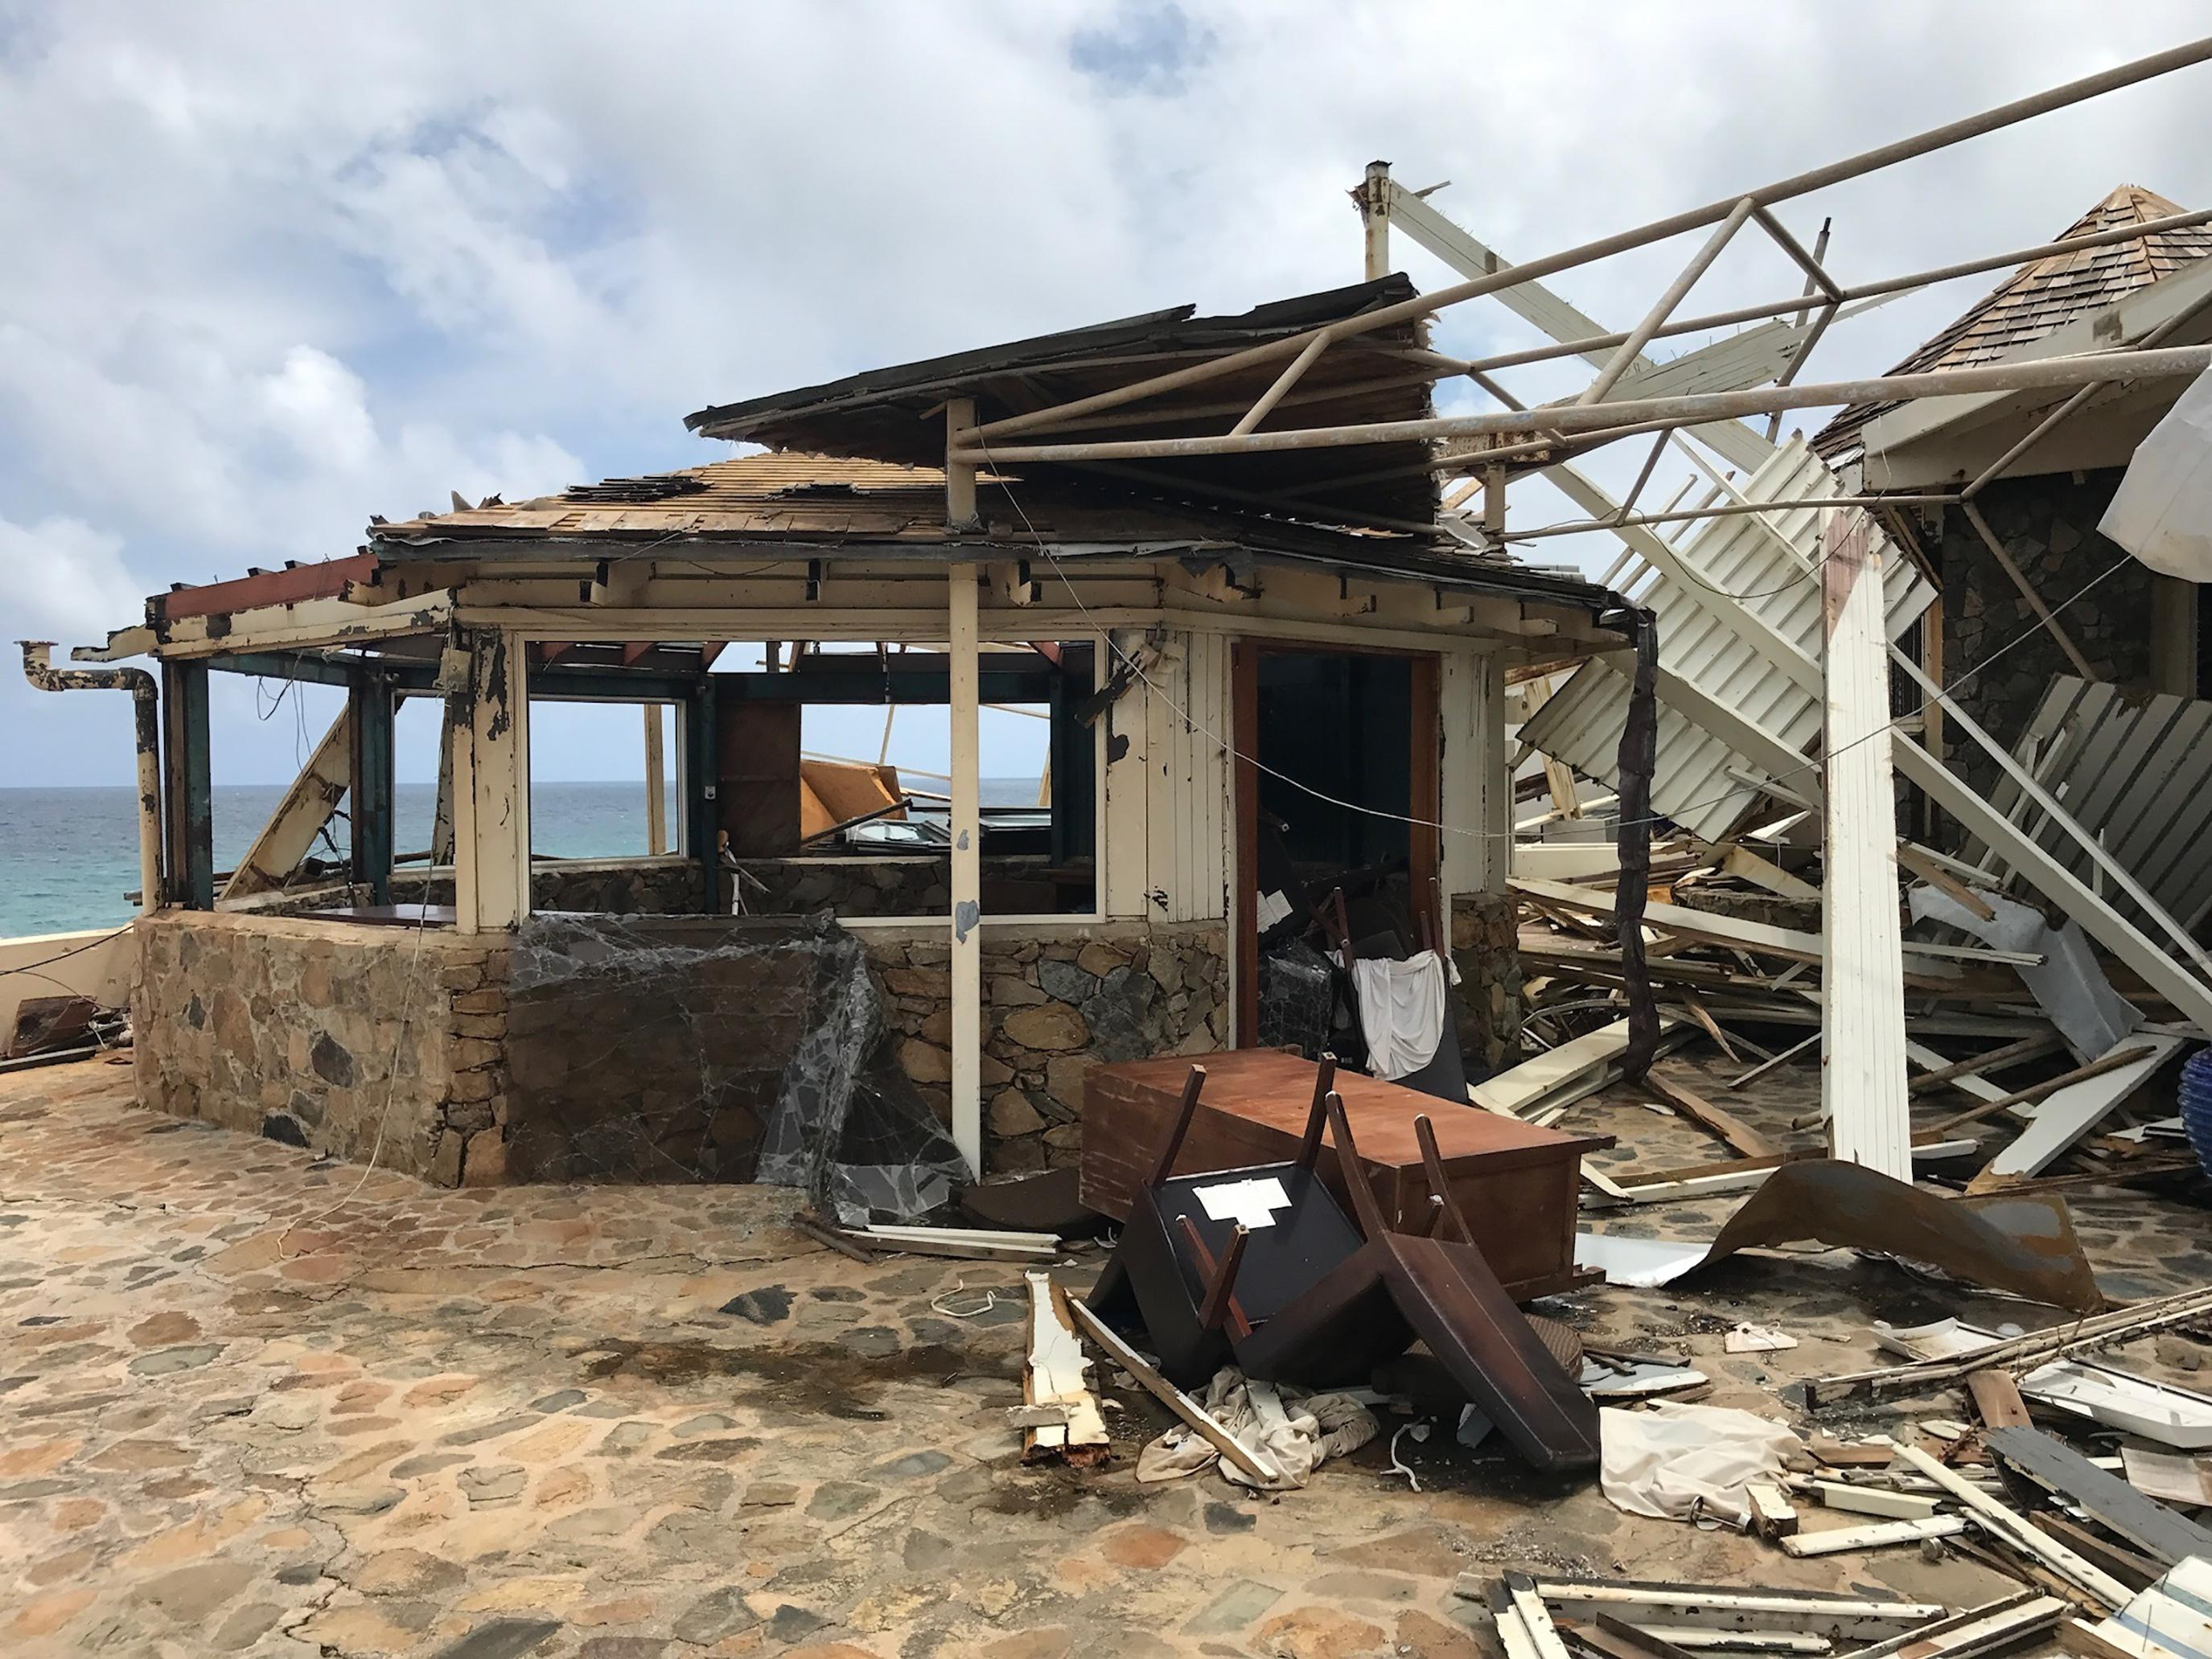 This Sept. 14, 2017 photo provided by Guillermo Houwer on Saturday, Sept. 16, shows storm damage to the Biras Creek Resort in the aftermath of Hurricane Irma on Virgin Gorda in the British Virgin Islands. (Guillermo Houwer via AP)